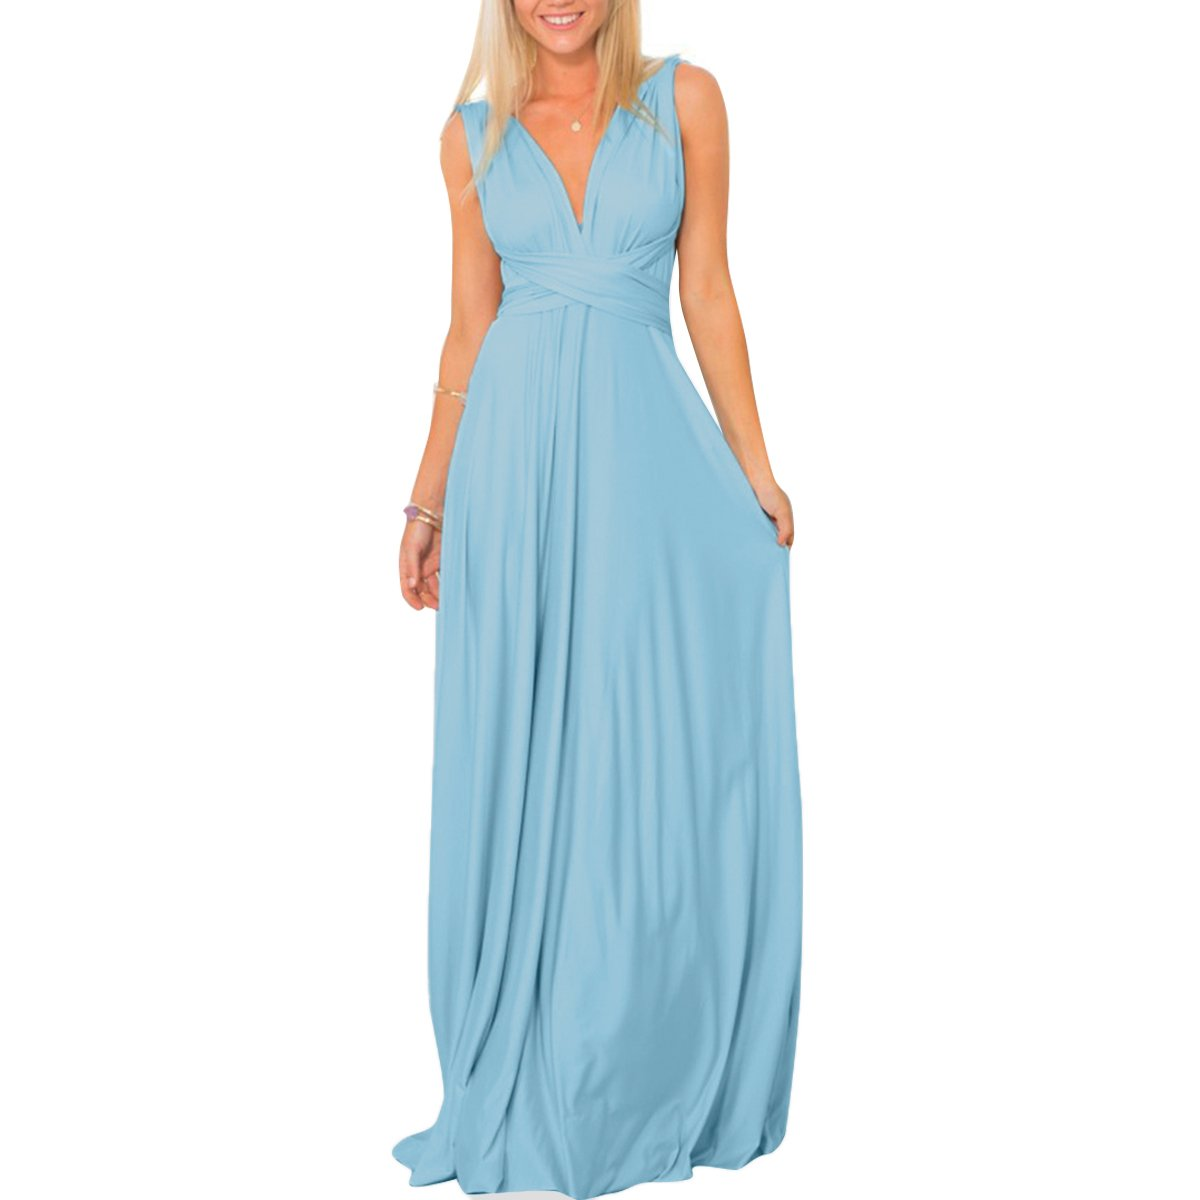 Women's Transformer Convertible Multi Way Wrap Long Prom Maxi Dress V-Neck Hight Low Wedding Bridesmaid Evening Party Grecian Dresses Boho Backless Halter Formal Cocktail Dance Gown Light Blue X-Large by IWEMEK